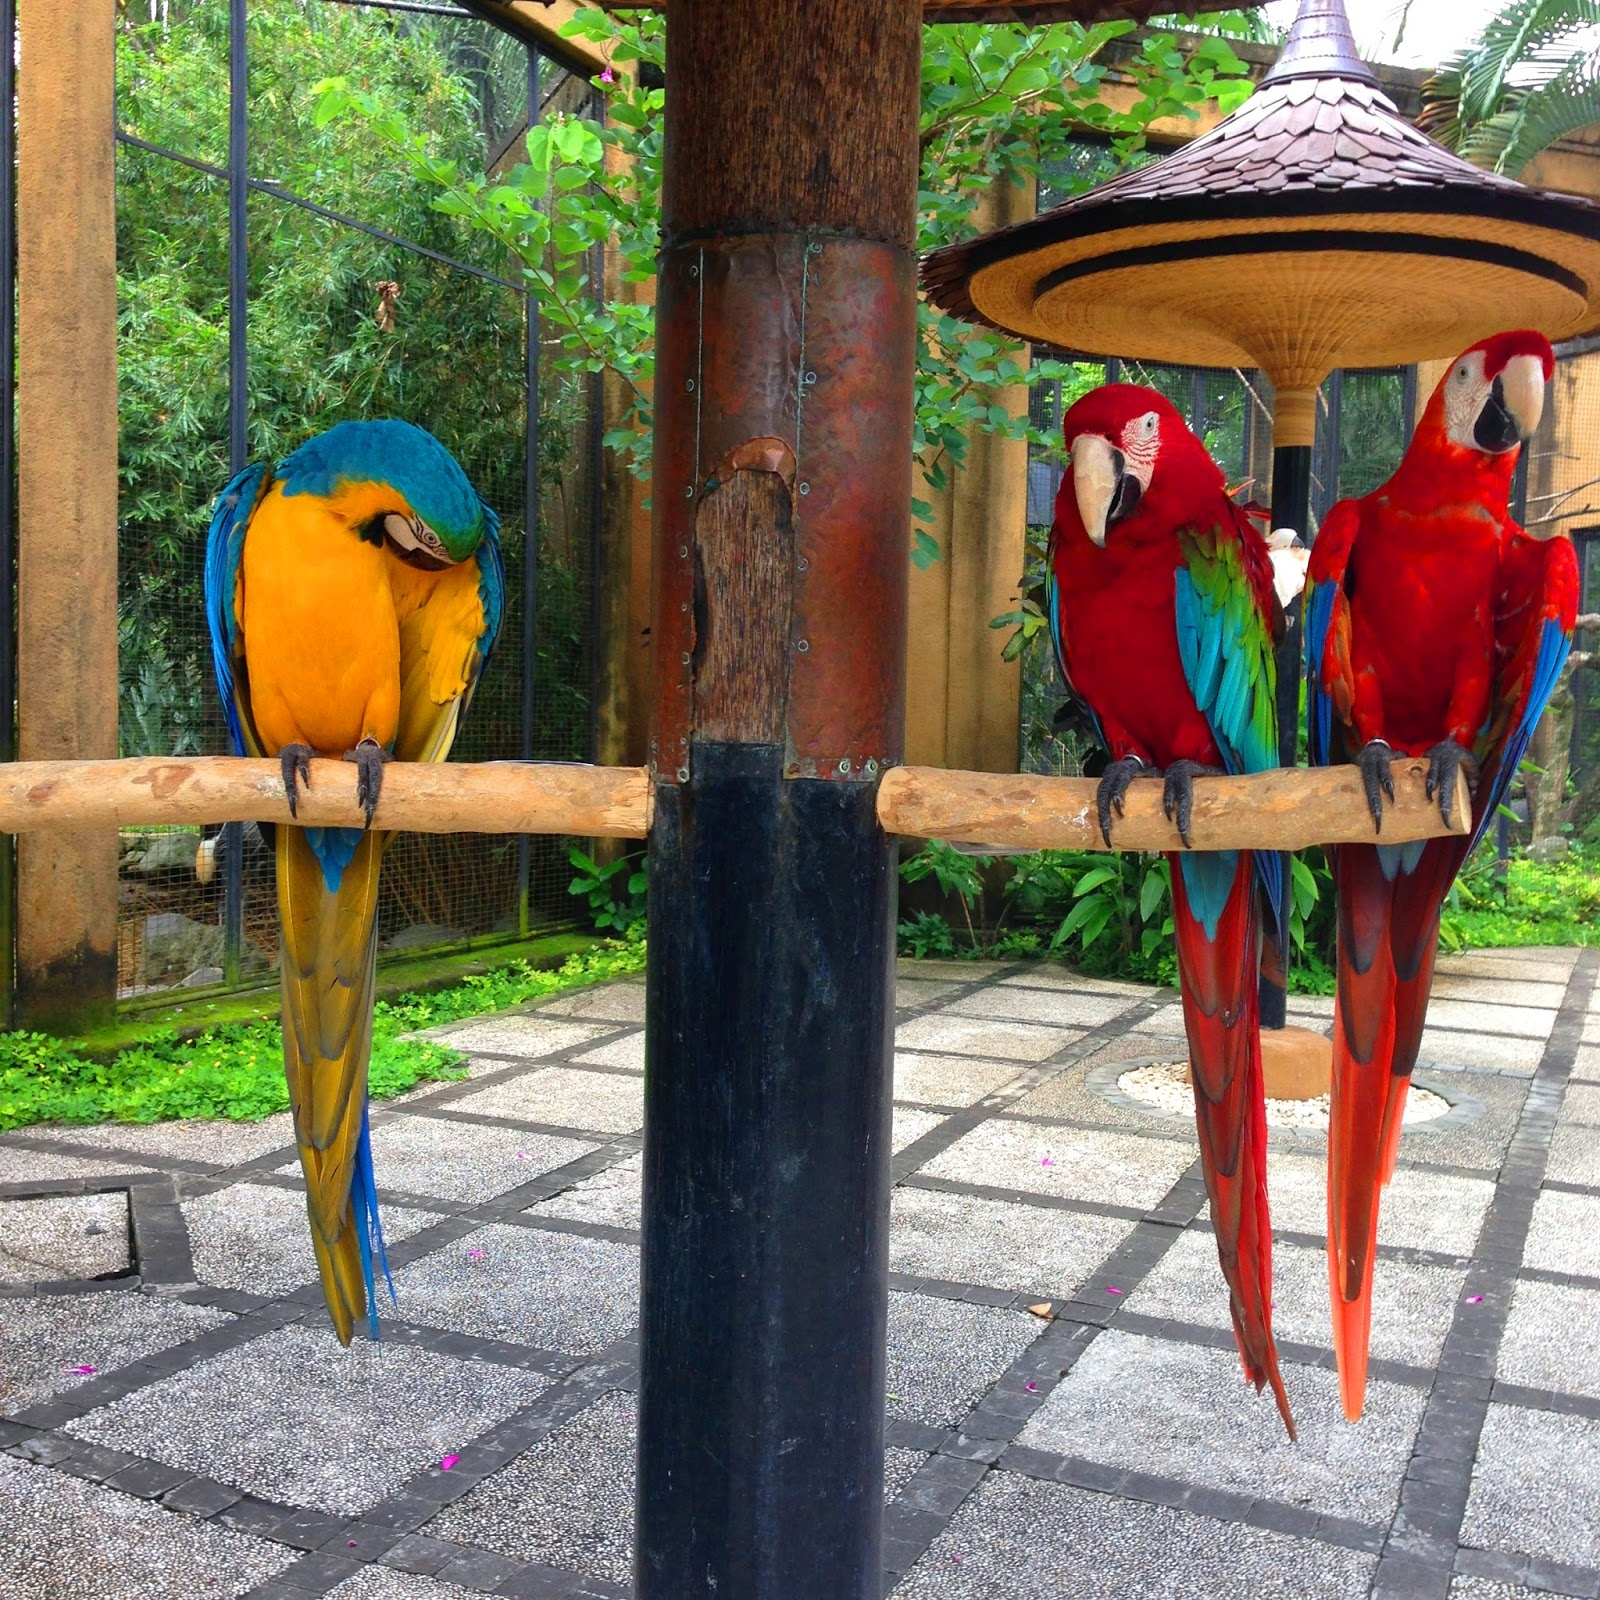 Bantall Living My Dream At Bali Bird Park Voucher Tiket Masuk Anak Wisata It Was So Lovely To See And Get Direct Interaction Those Birds I Liked Kinda Macaw Or Parrots By The Way Love Their Colour